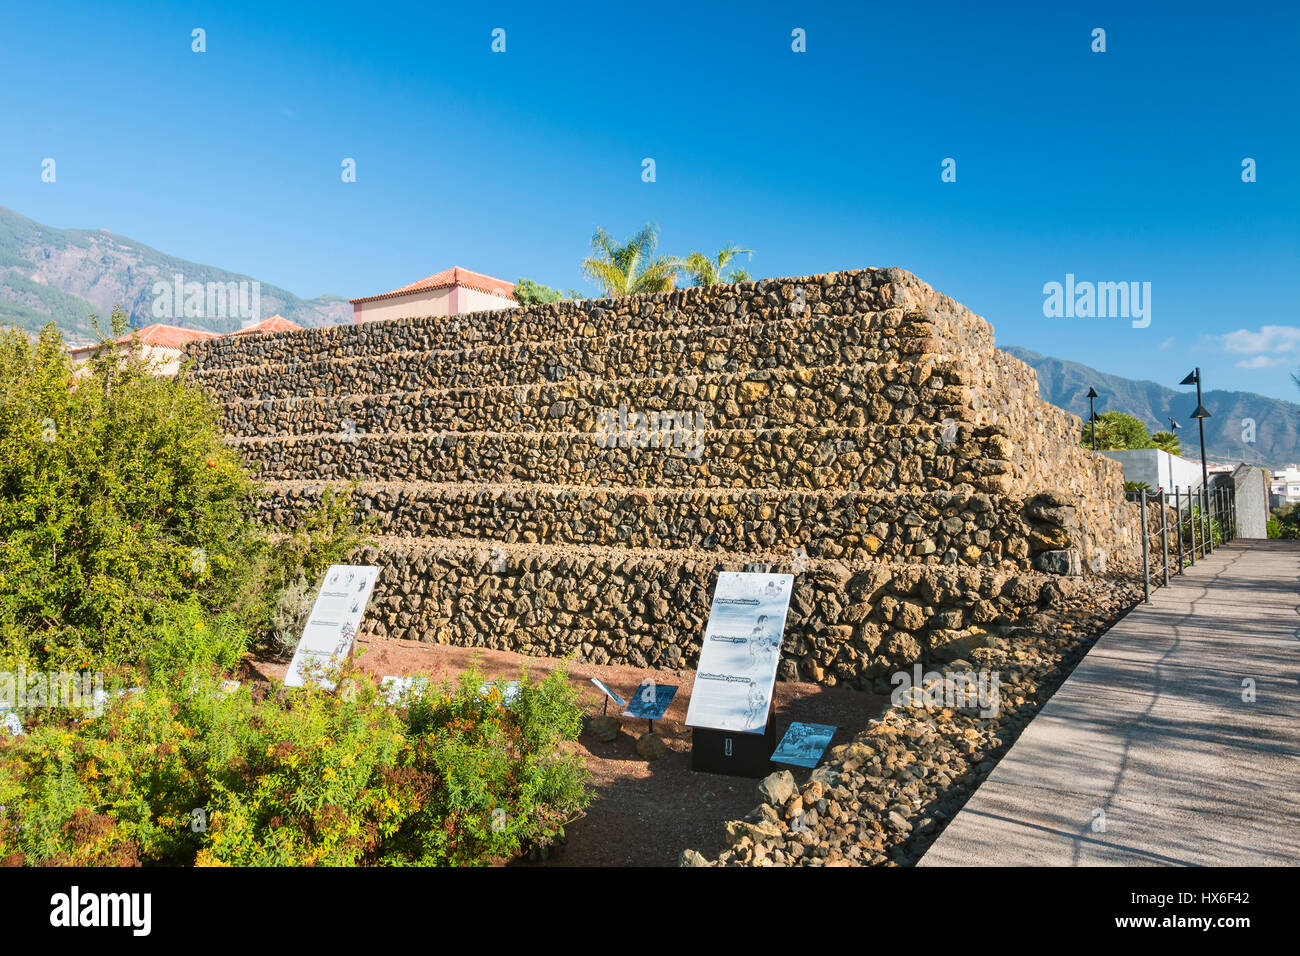 TENERIFE - OCTOBER 14: The ancient Pyramids of Guimar in Tenerife, Spain on October 14, 2014 - Stock Image